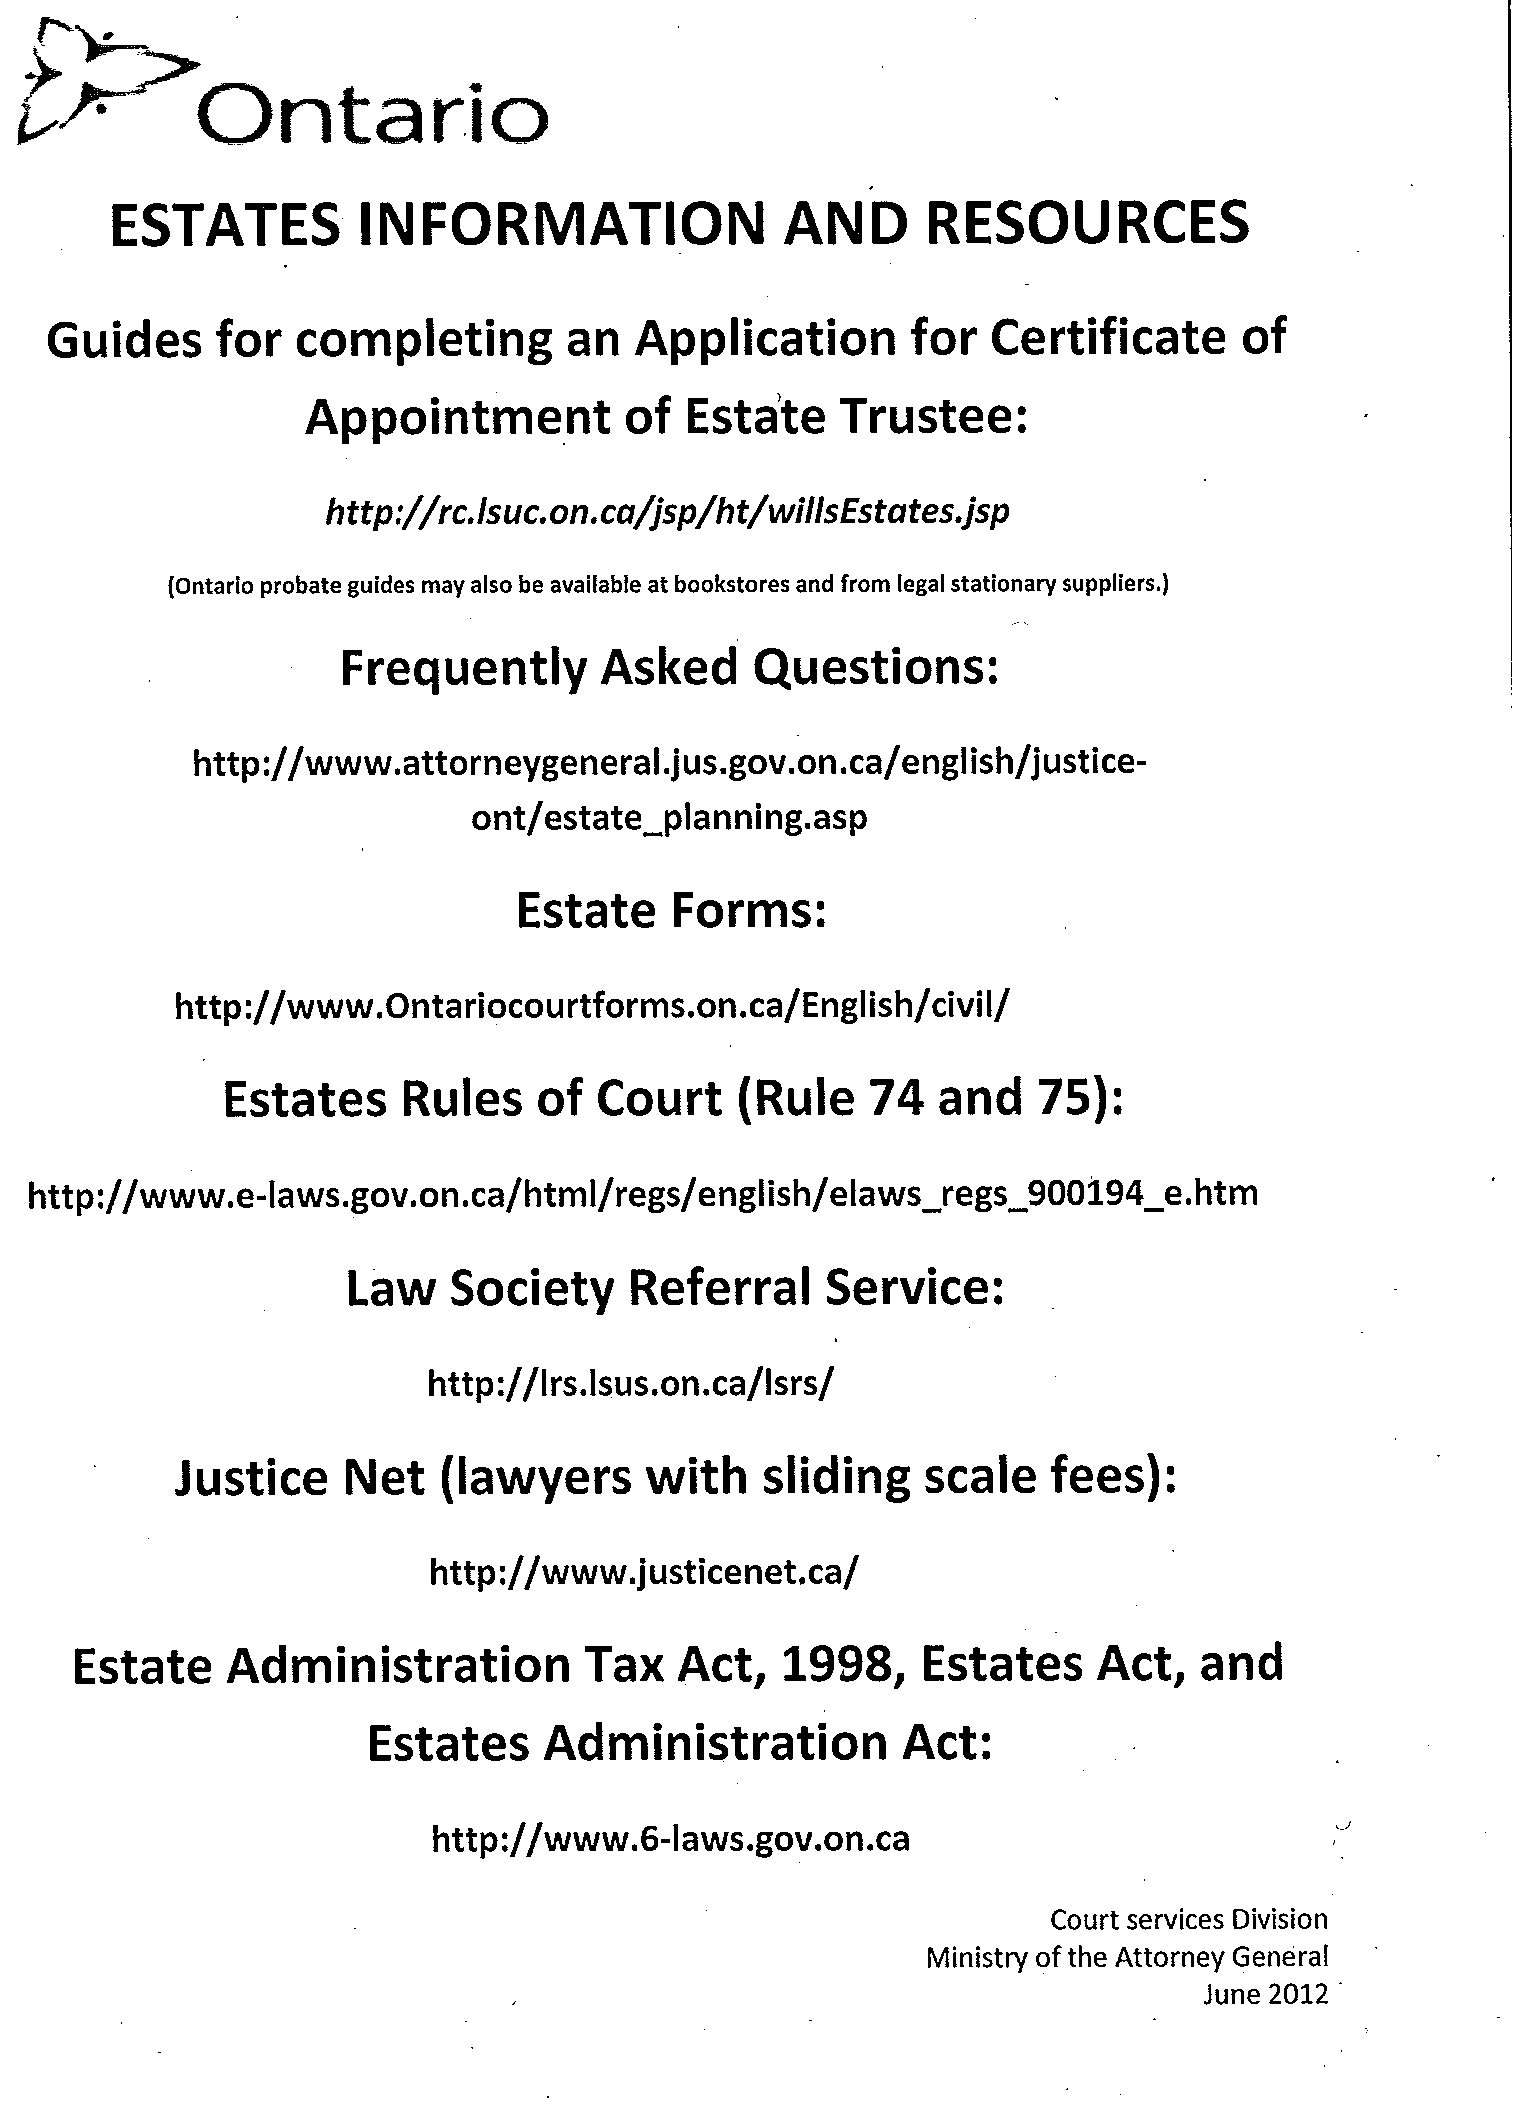 Notice to all estates lawyers estates list urgent new guidelines estates information solutioingenieria